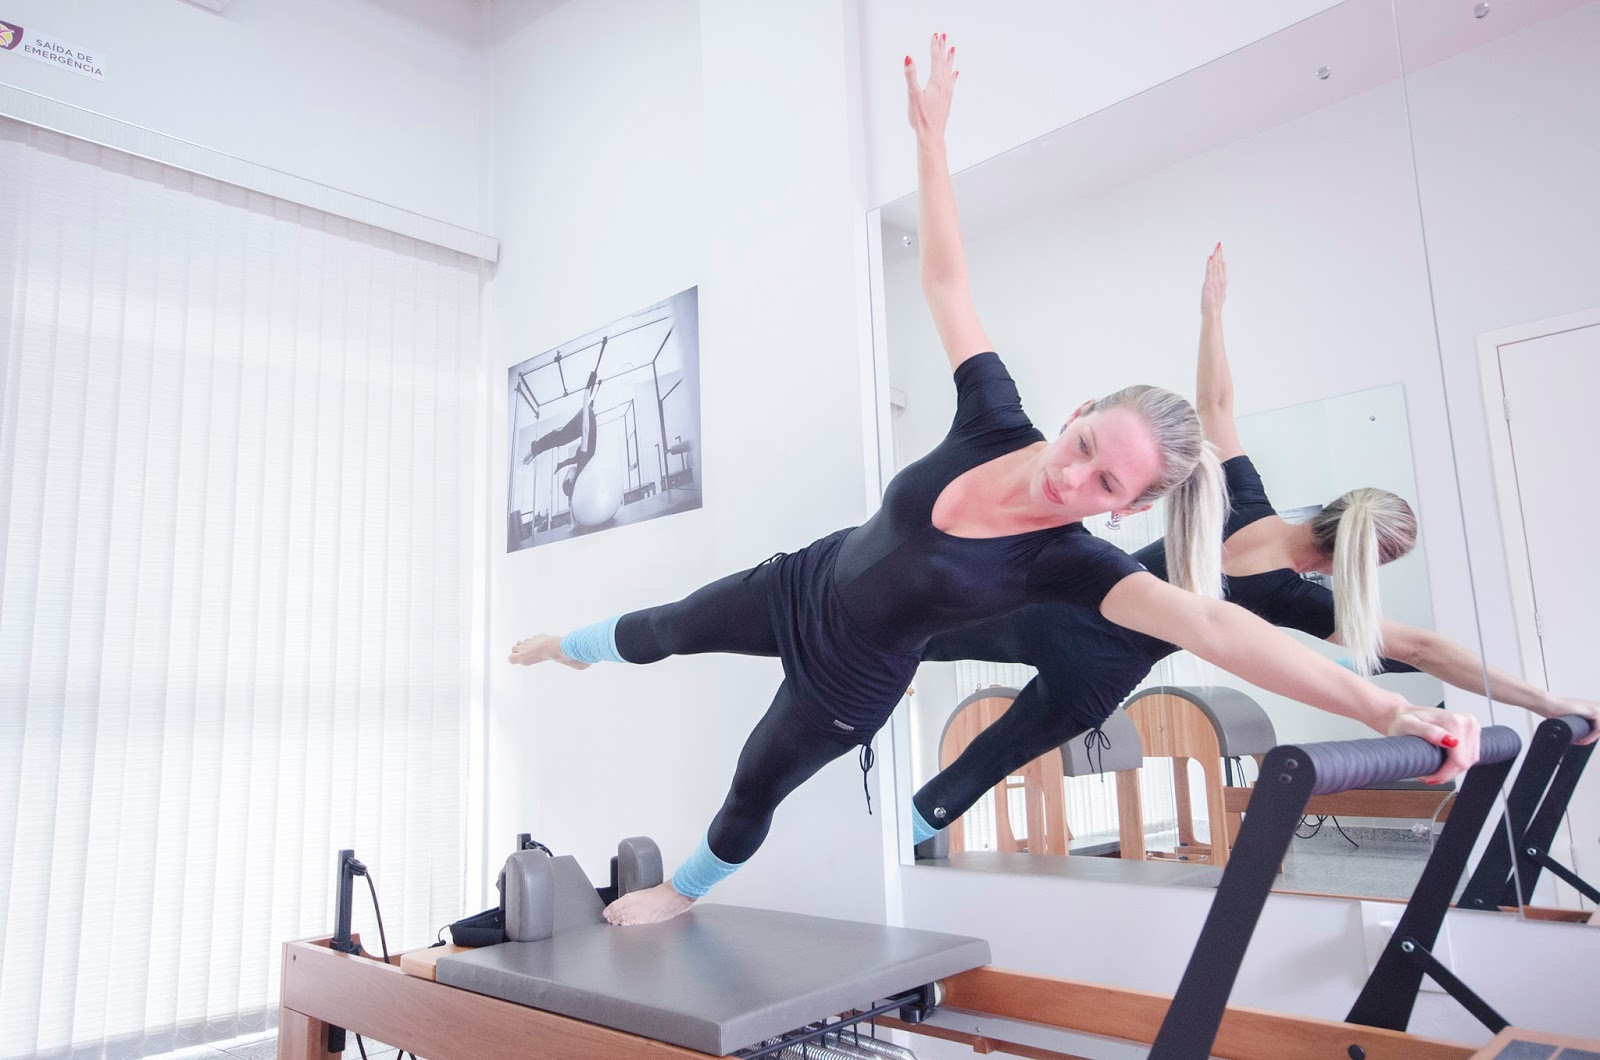 Karen Valezio Fisioterapia & Pilates - photo